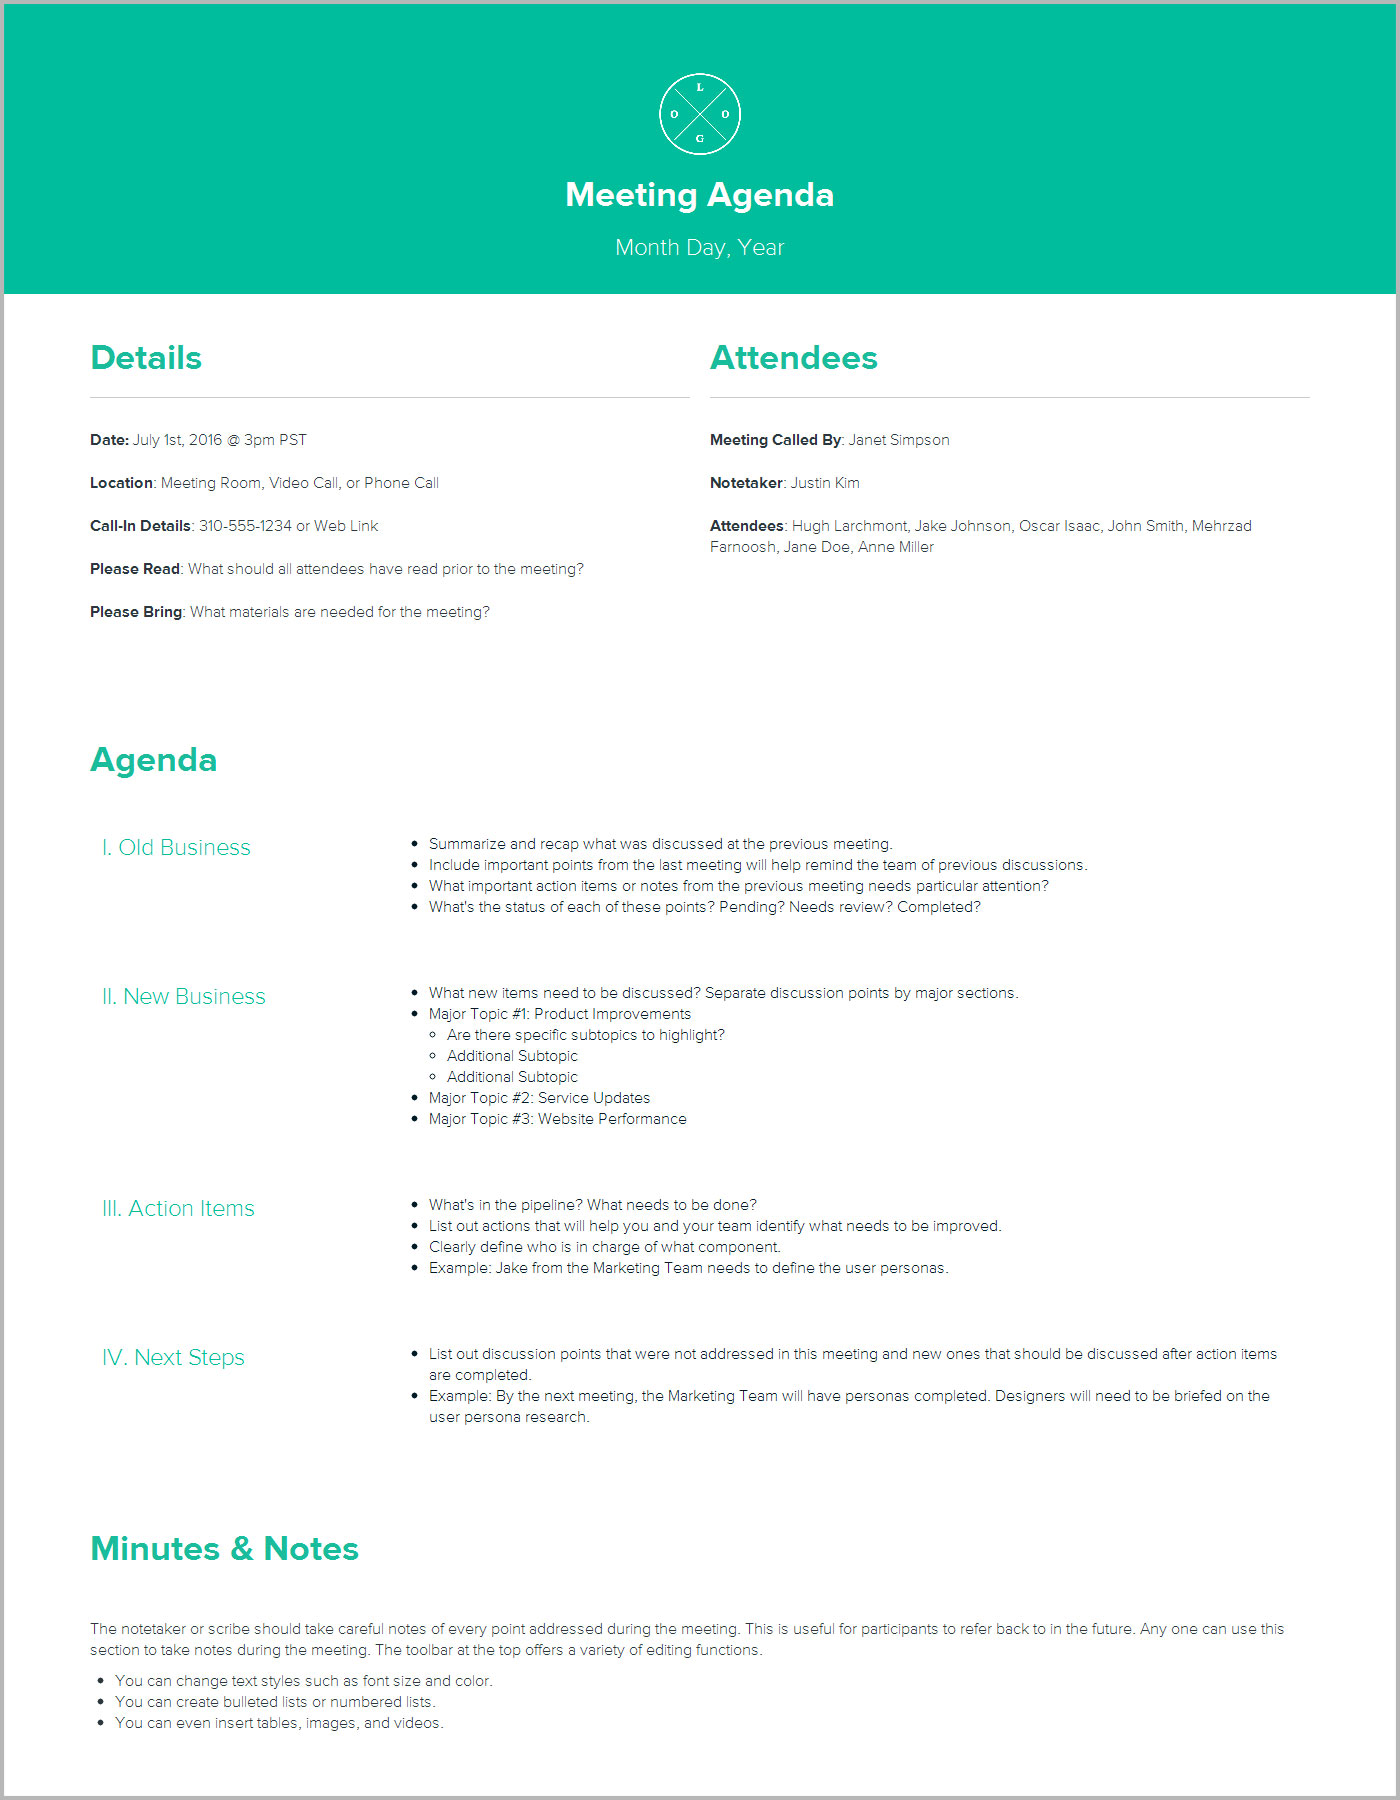 Meeting Agenda Template By Xtensio  Agenda For Meeting Template